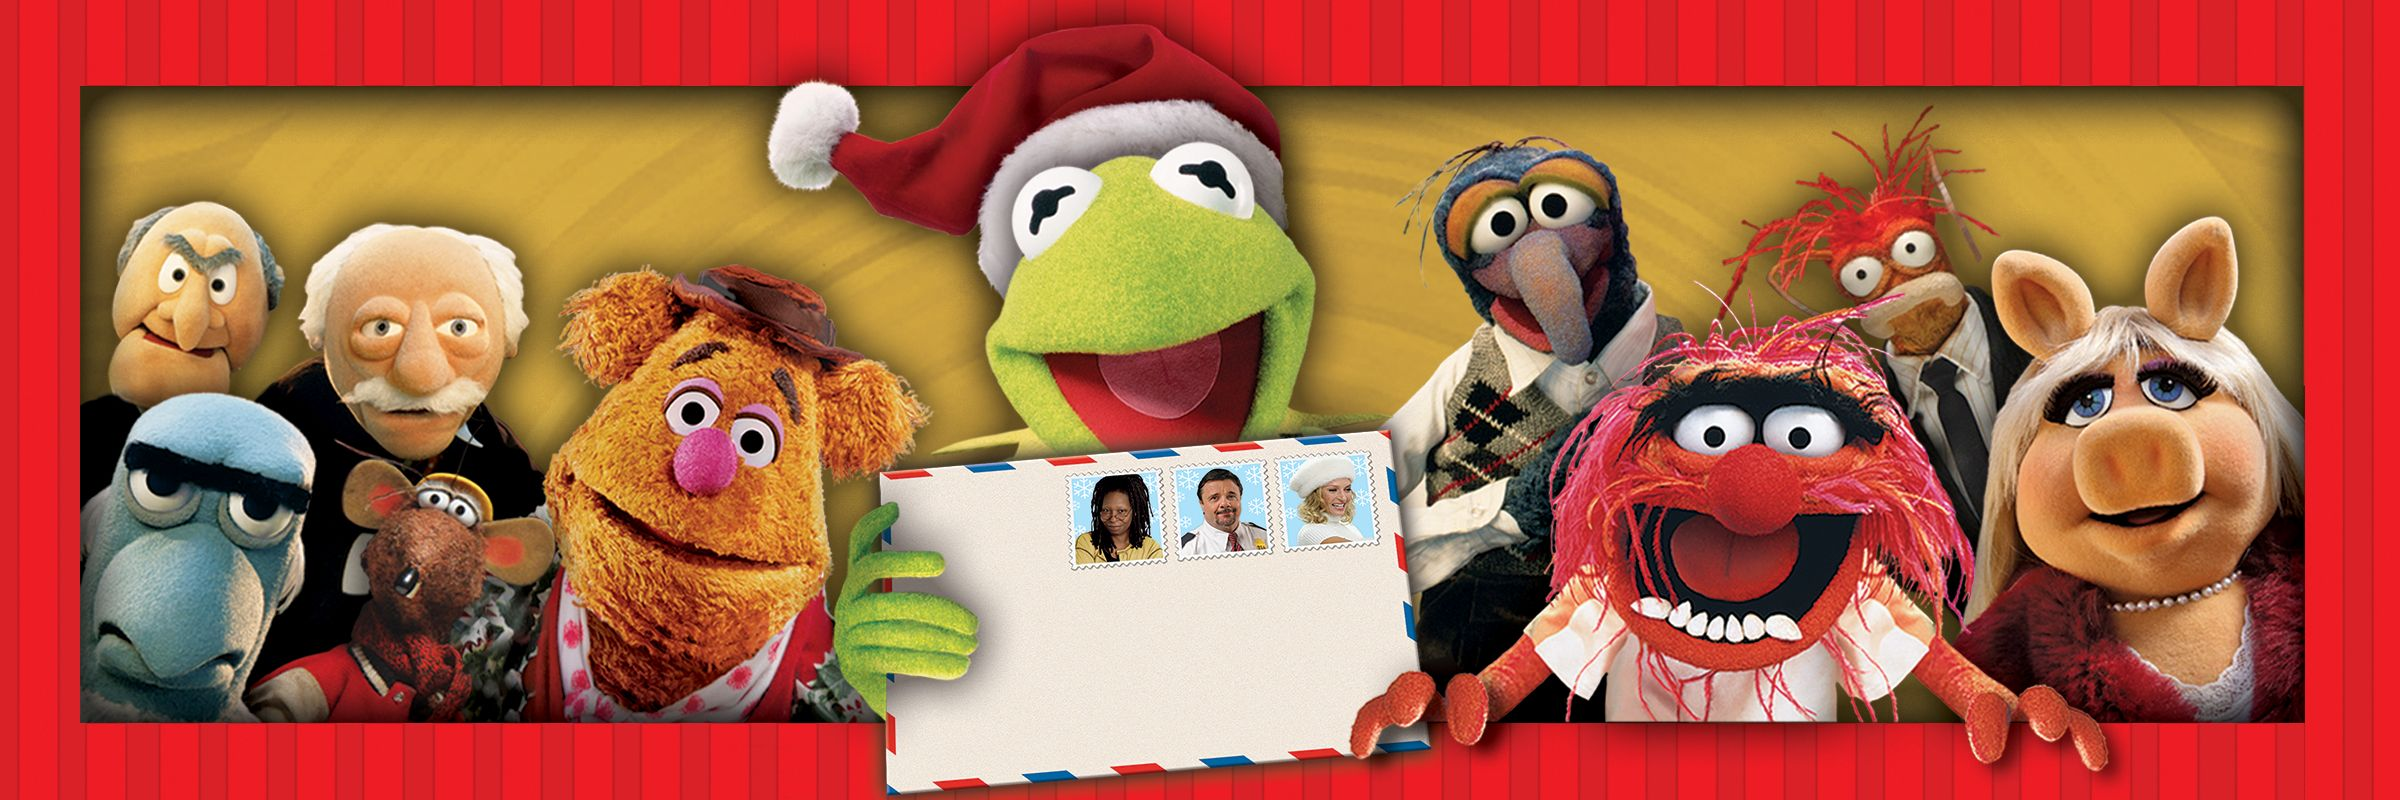 Muppet Christmas.A Muppets Christmas Letters To Santa Trailer